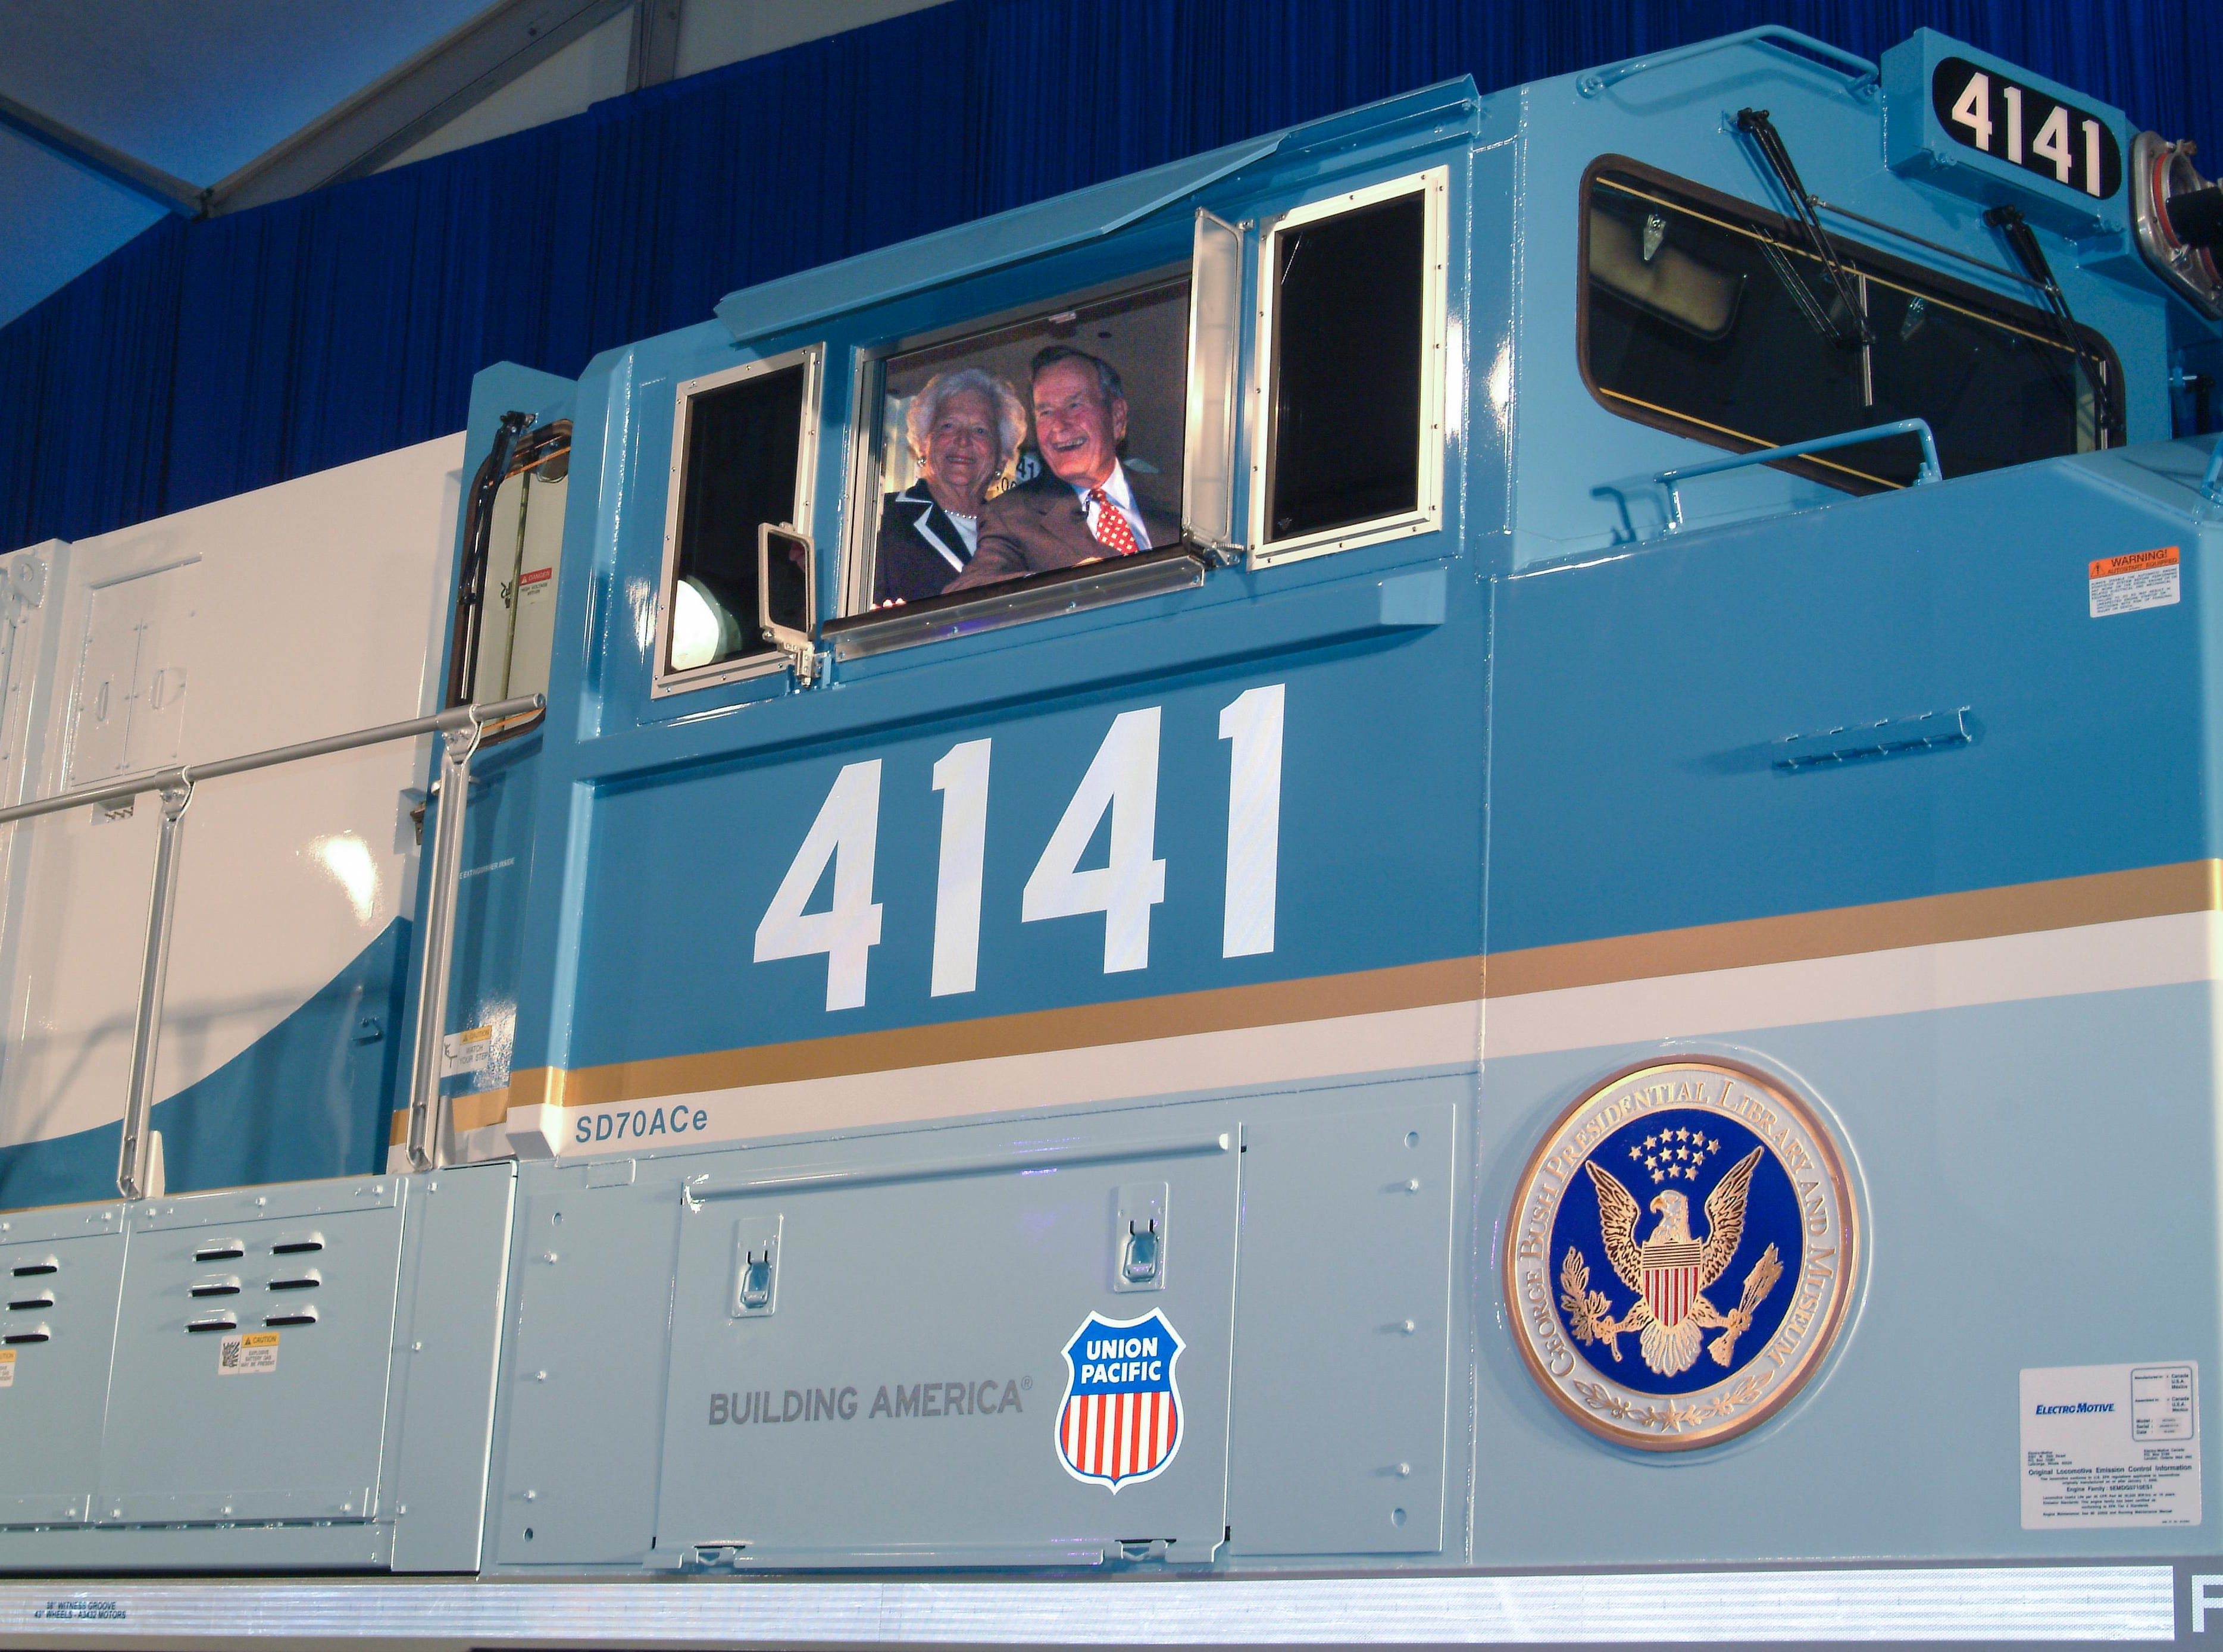 George and Barbara Bush inside the cab of Union Pacific locomotive No. 4141 at its 2005 unveiling.